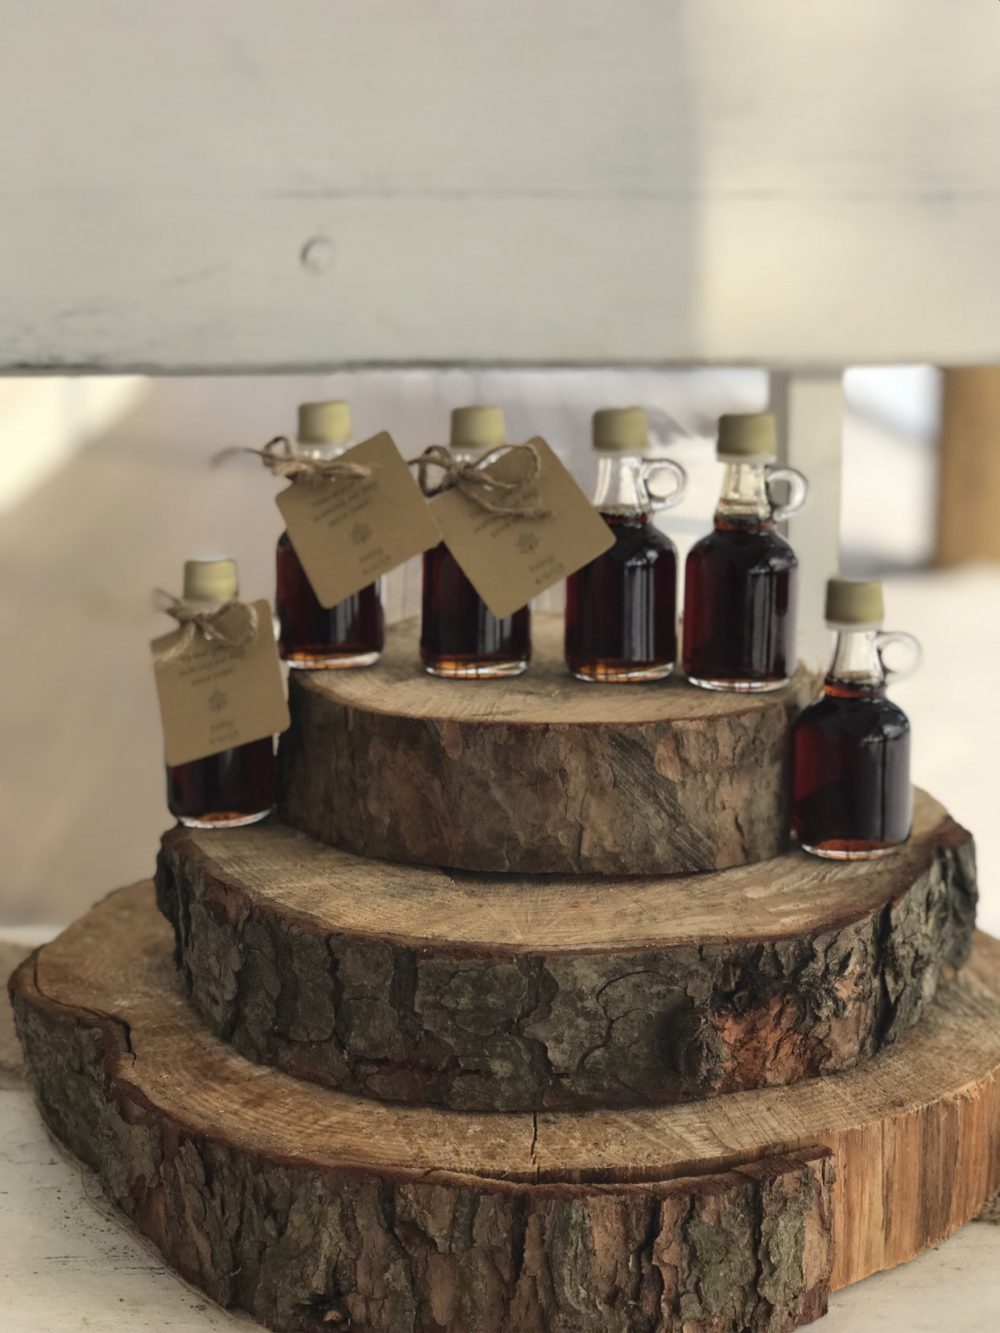 75, Maple Syrup Wedding Favors, Bridal Shower Favors, Love Is Sweet, Fall Favors, Personalized Favors, Pure Maple Syrup, Baby Favors